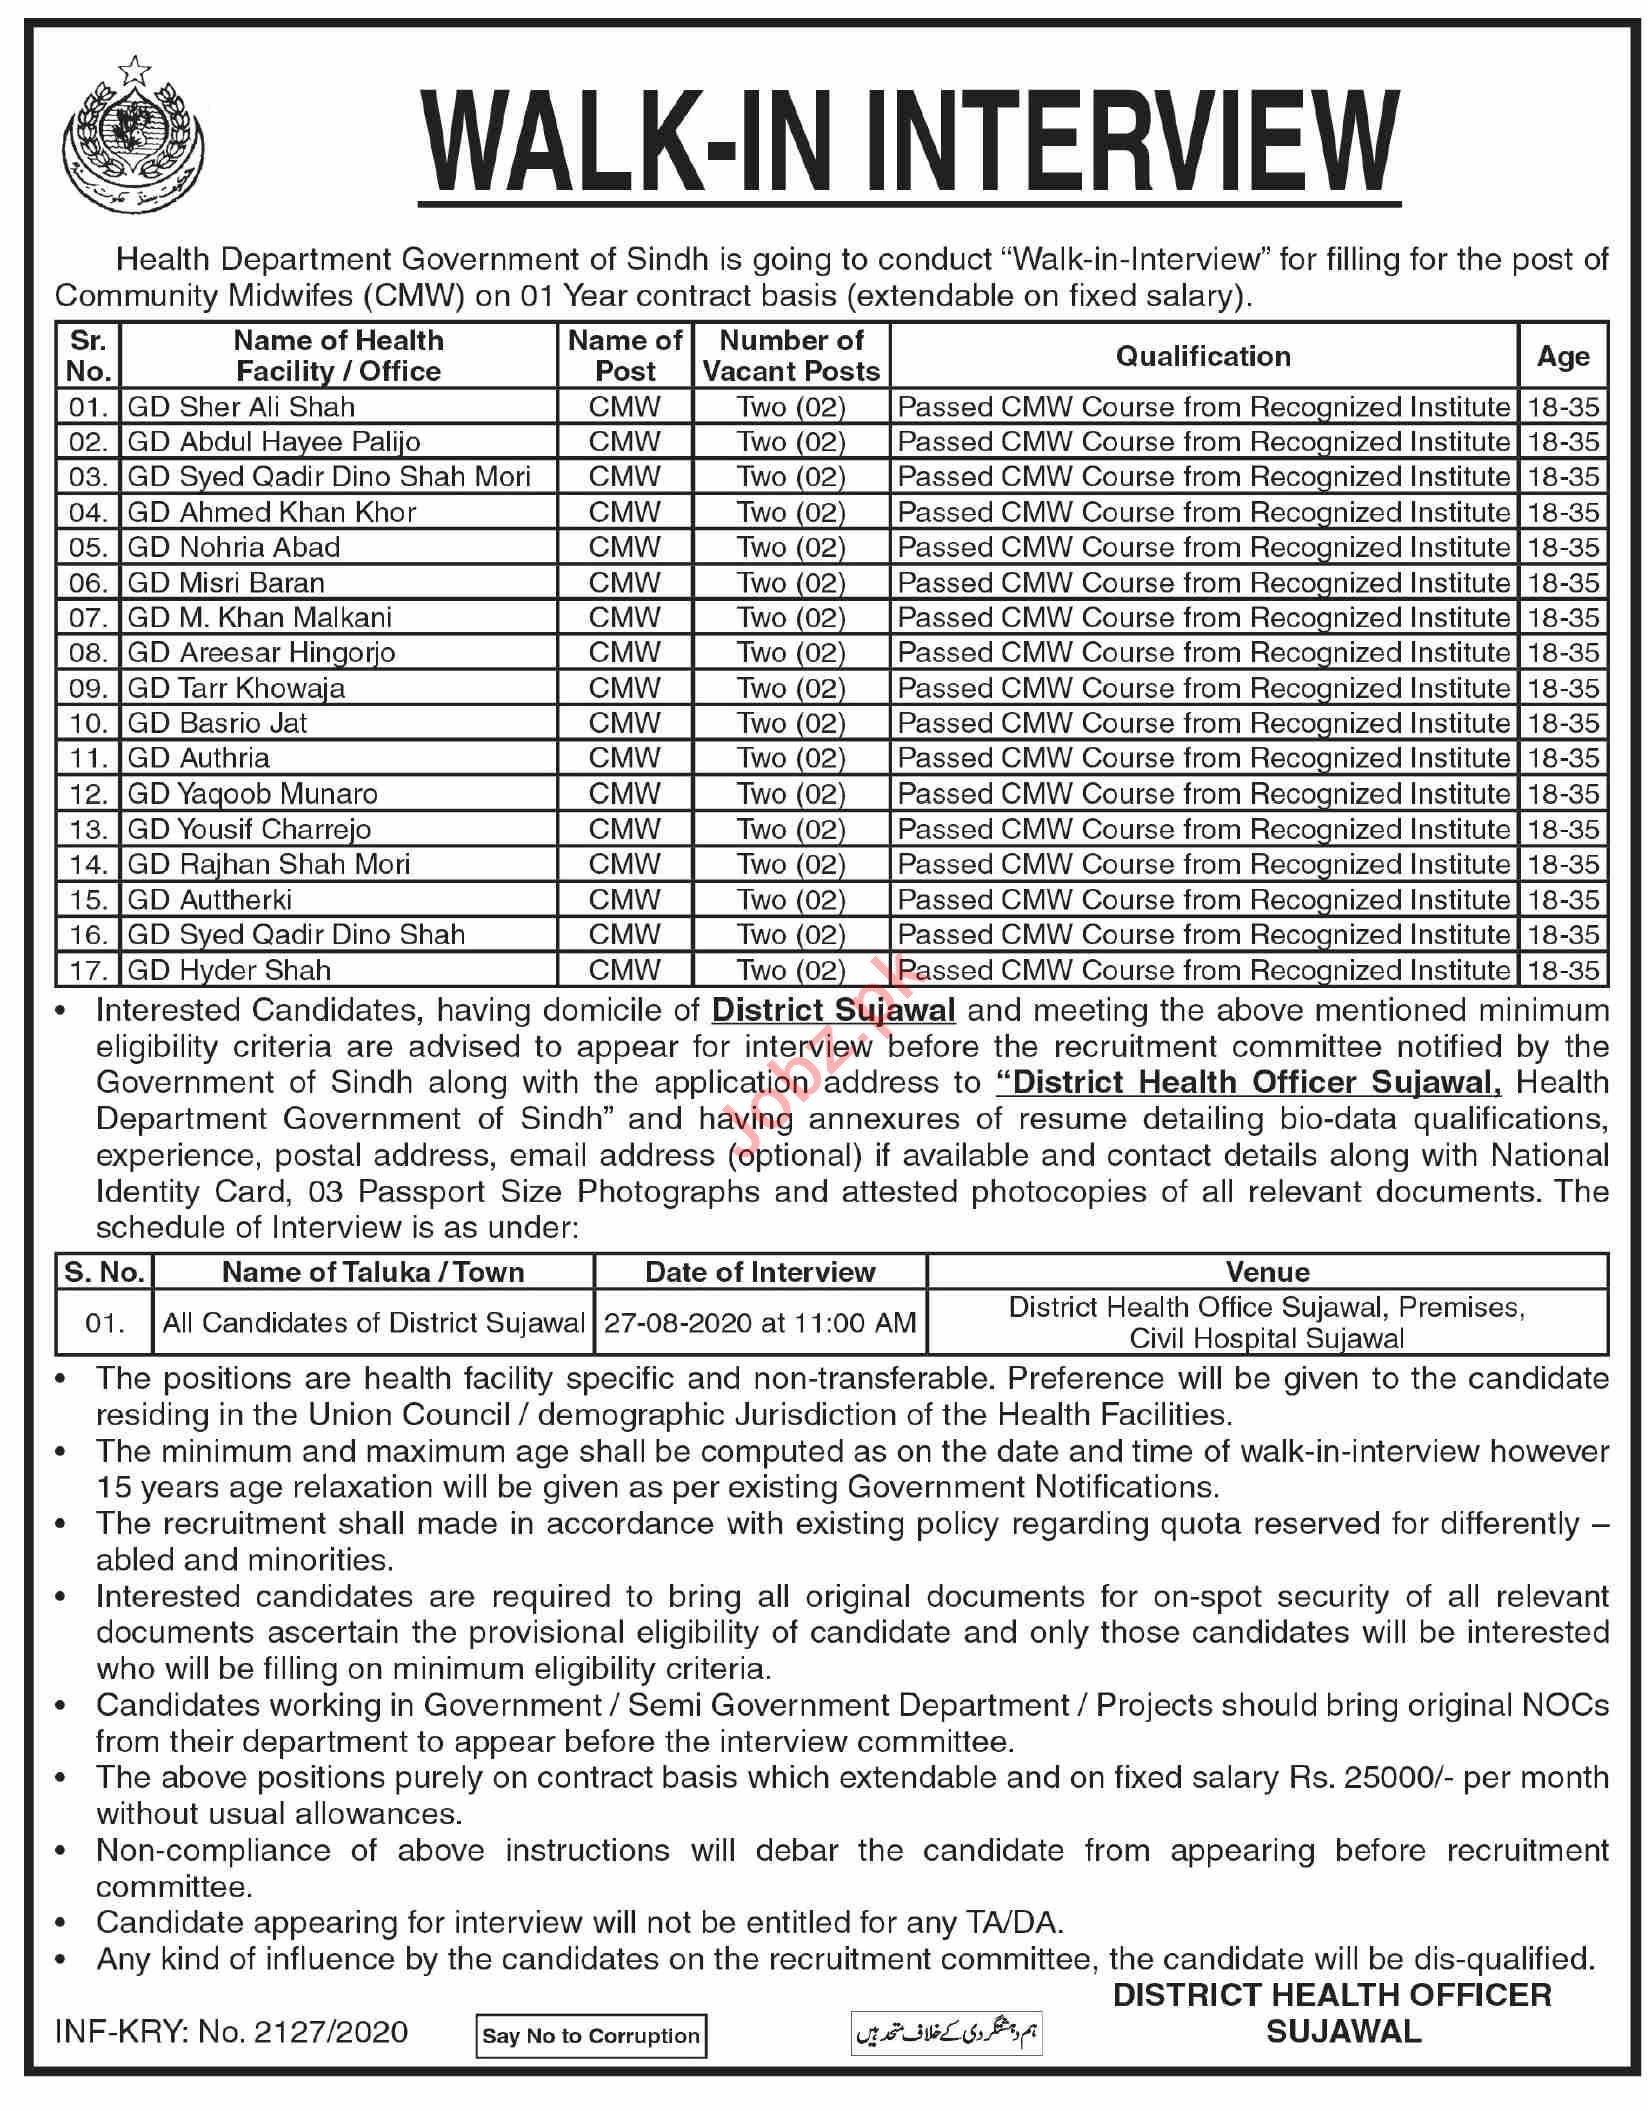 Health Department Sujawal Jobs Interview 2020 for CMW